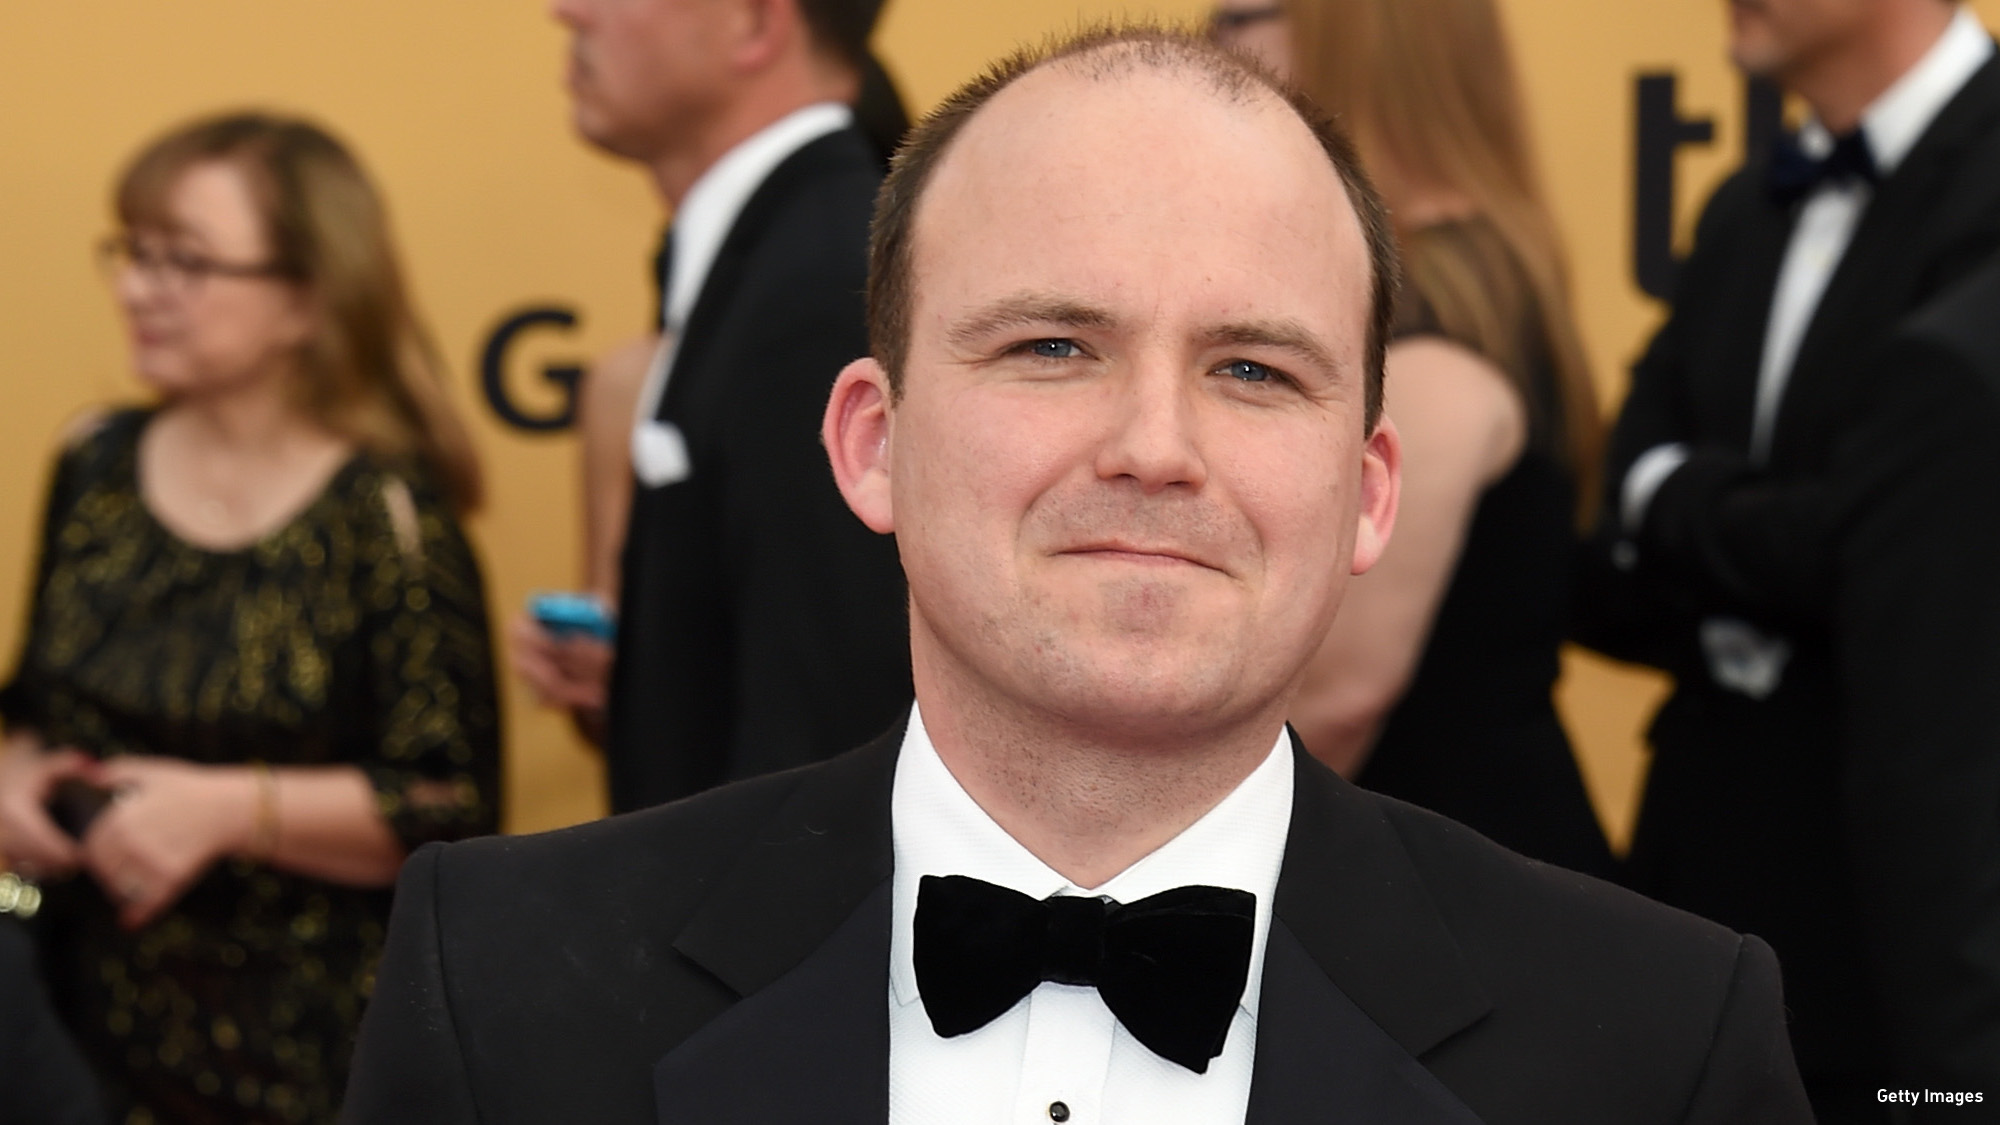 rory kinnear macbethrory kinnear hamlet, rory kinnear bbc, rory kinnear imdb, rory kinnear twitter, rory kinnear singing, rory kinnear guerilla, rory kinnear wiki, rory kinnear doctor who, rory kinnear theatre, rory kinnear penny dreadful, rory kinnear tv shows, rory kinnear instagram, rory kinnear macbeth, rory kinnear, rory kinnear height, rory kinnear the trial, rory kinnear skyfall, rory kinnear bond, rory kinnear wife, rory kinnear othello